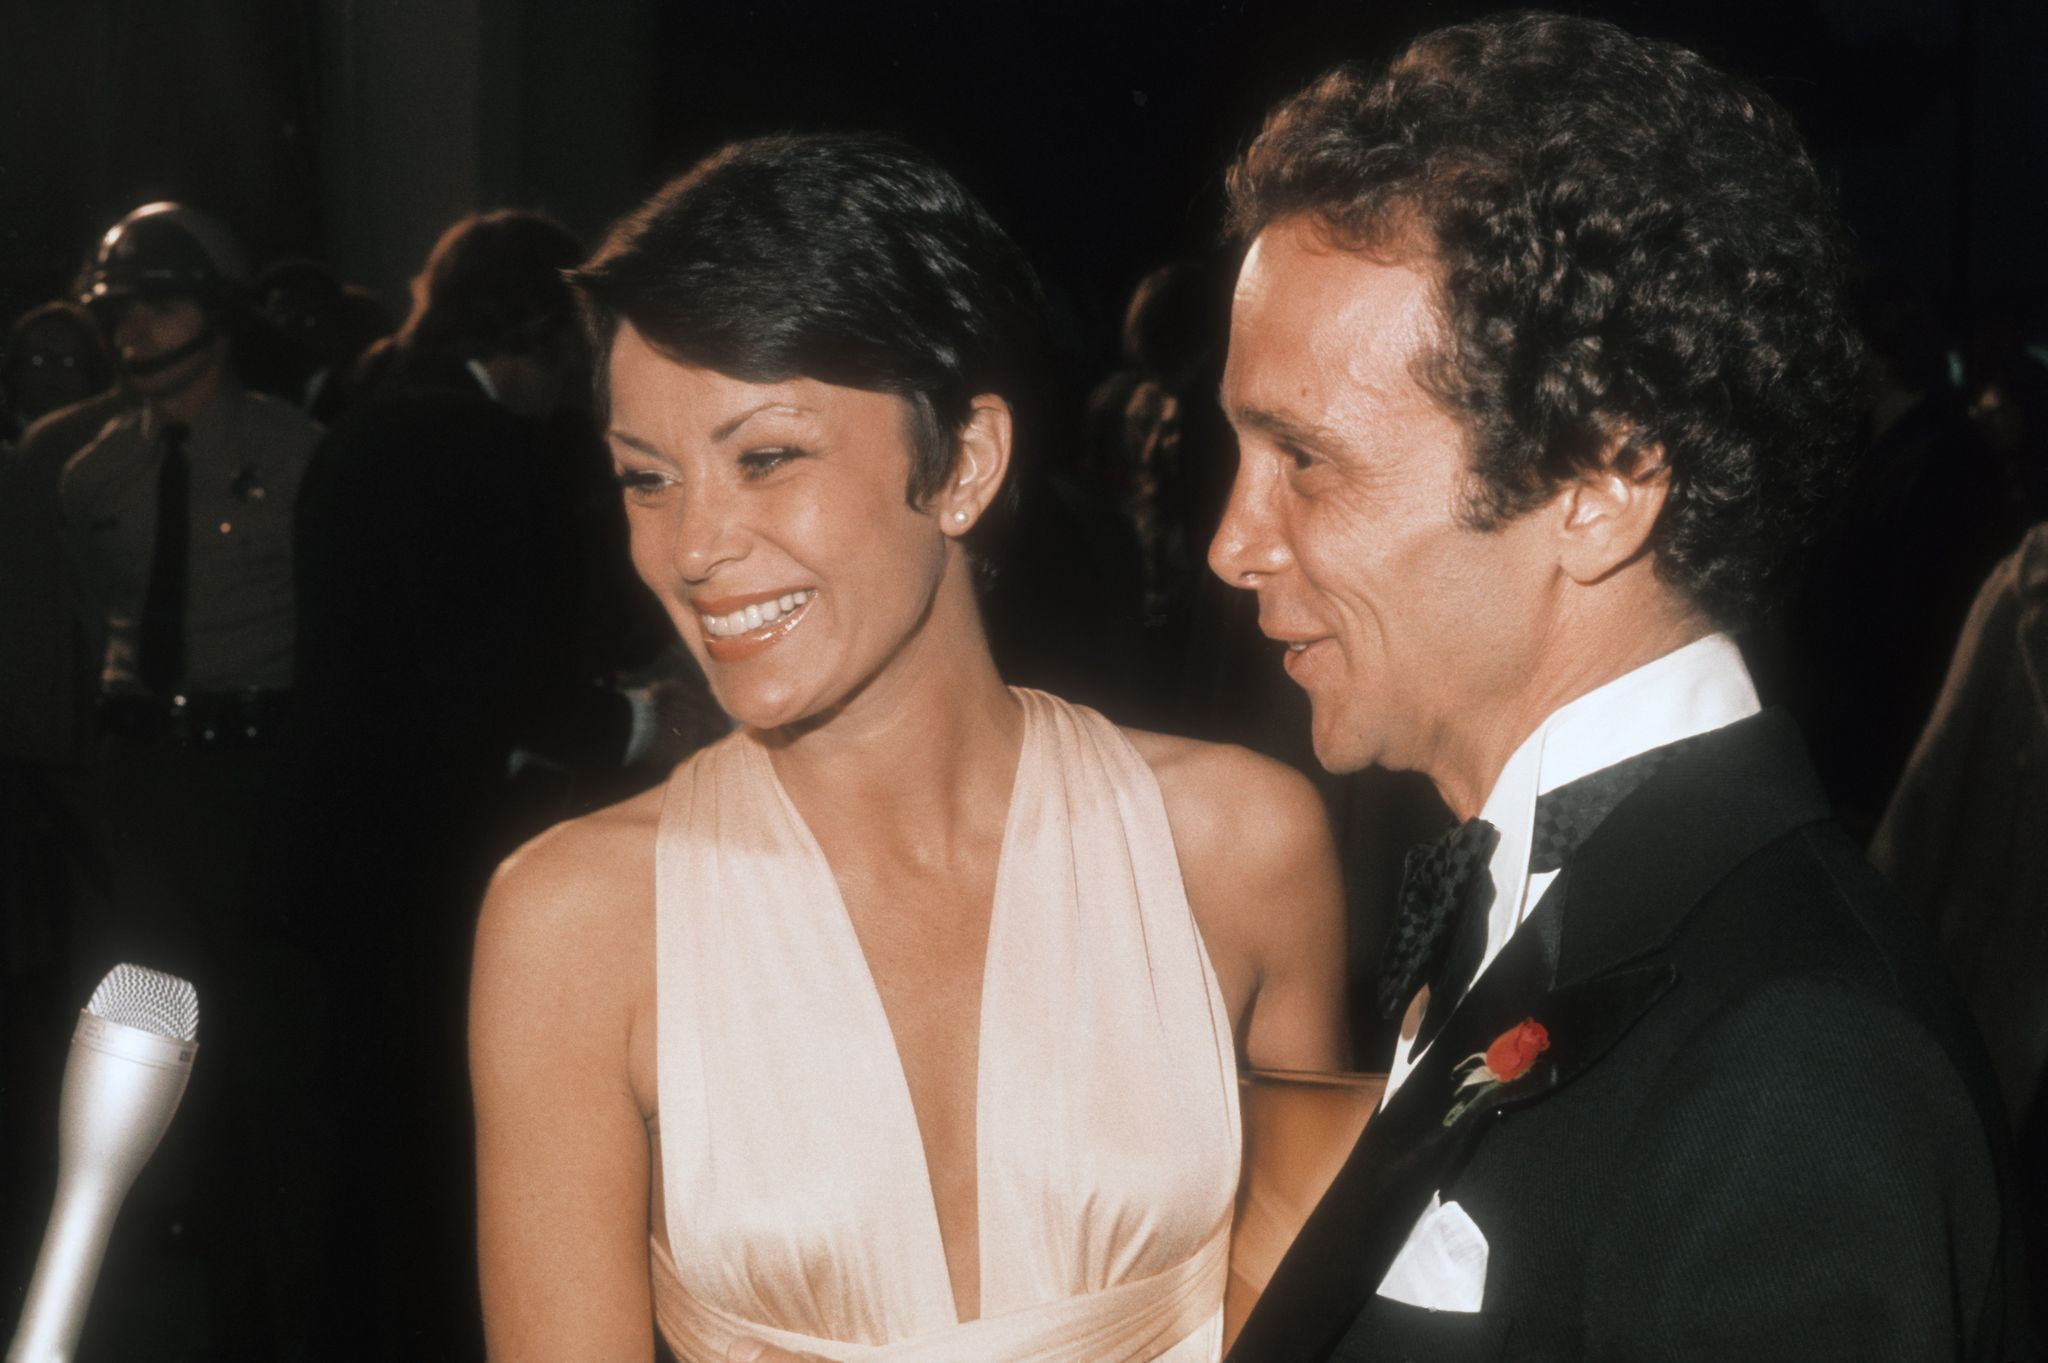 Joel Grey and wife Jo Wilder  at the 1975 Academy Awards in Los Angeles, California | Source: Getty Images